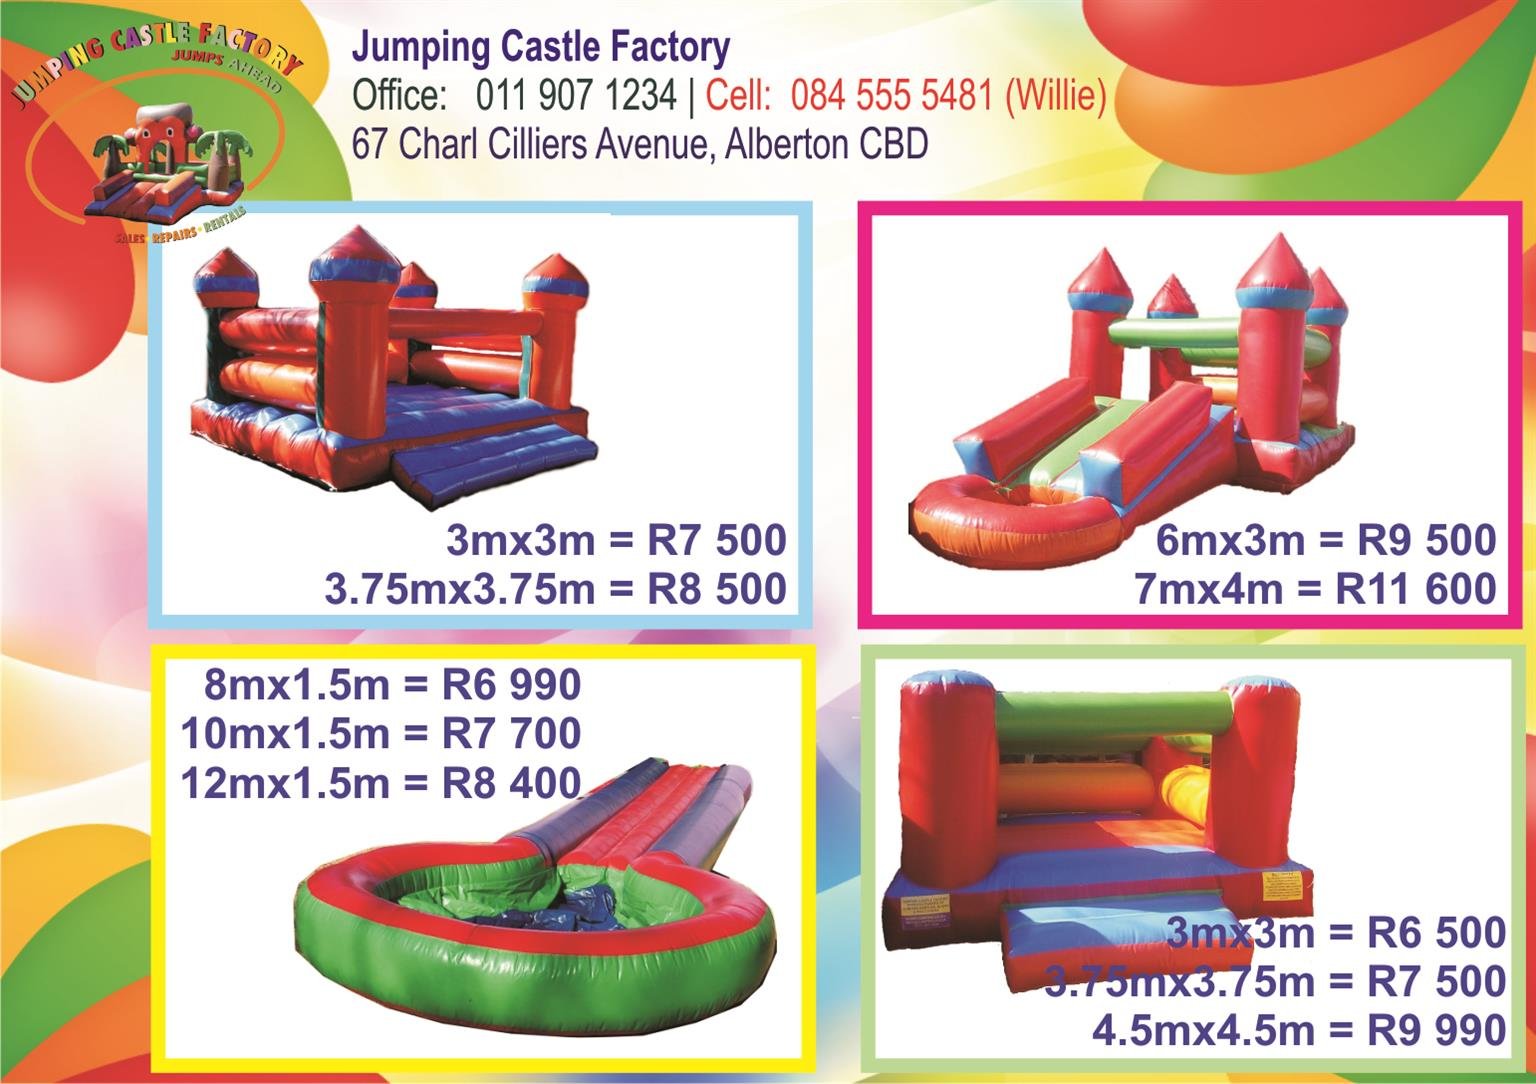 Jumping Castle Factory New Jumping Castles From R6500 00